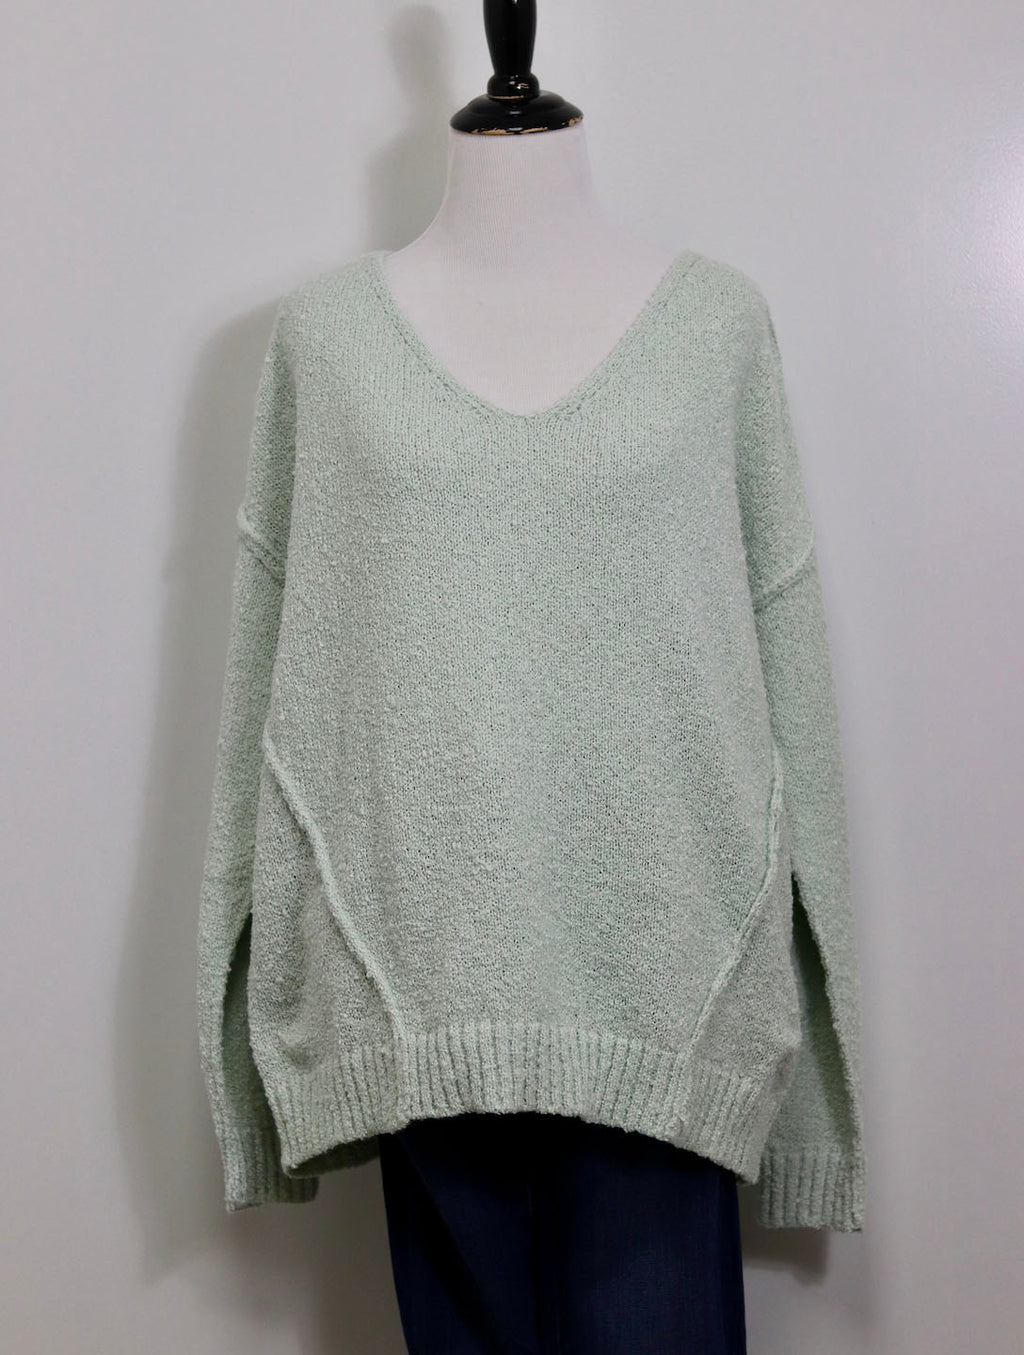 Woven Heart Raw Seam Sweater in Mint